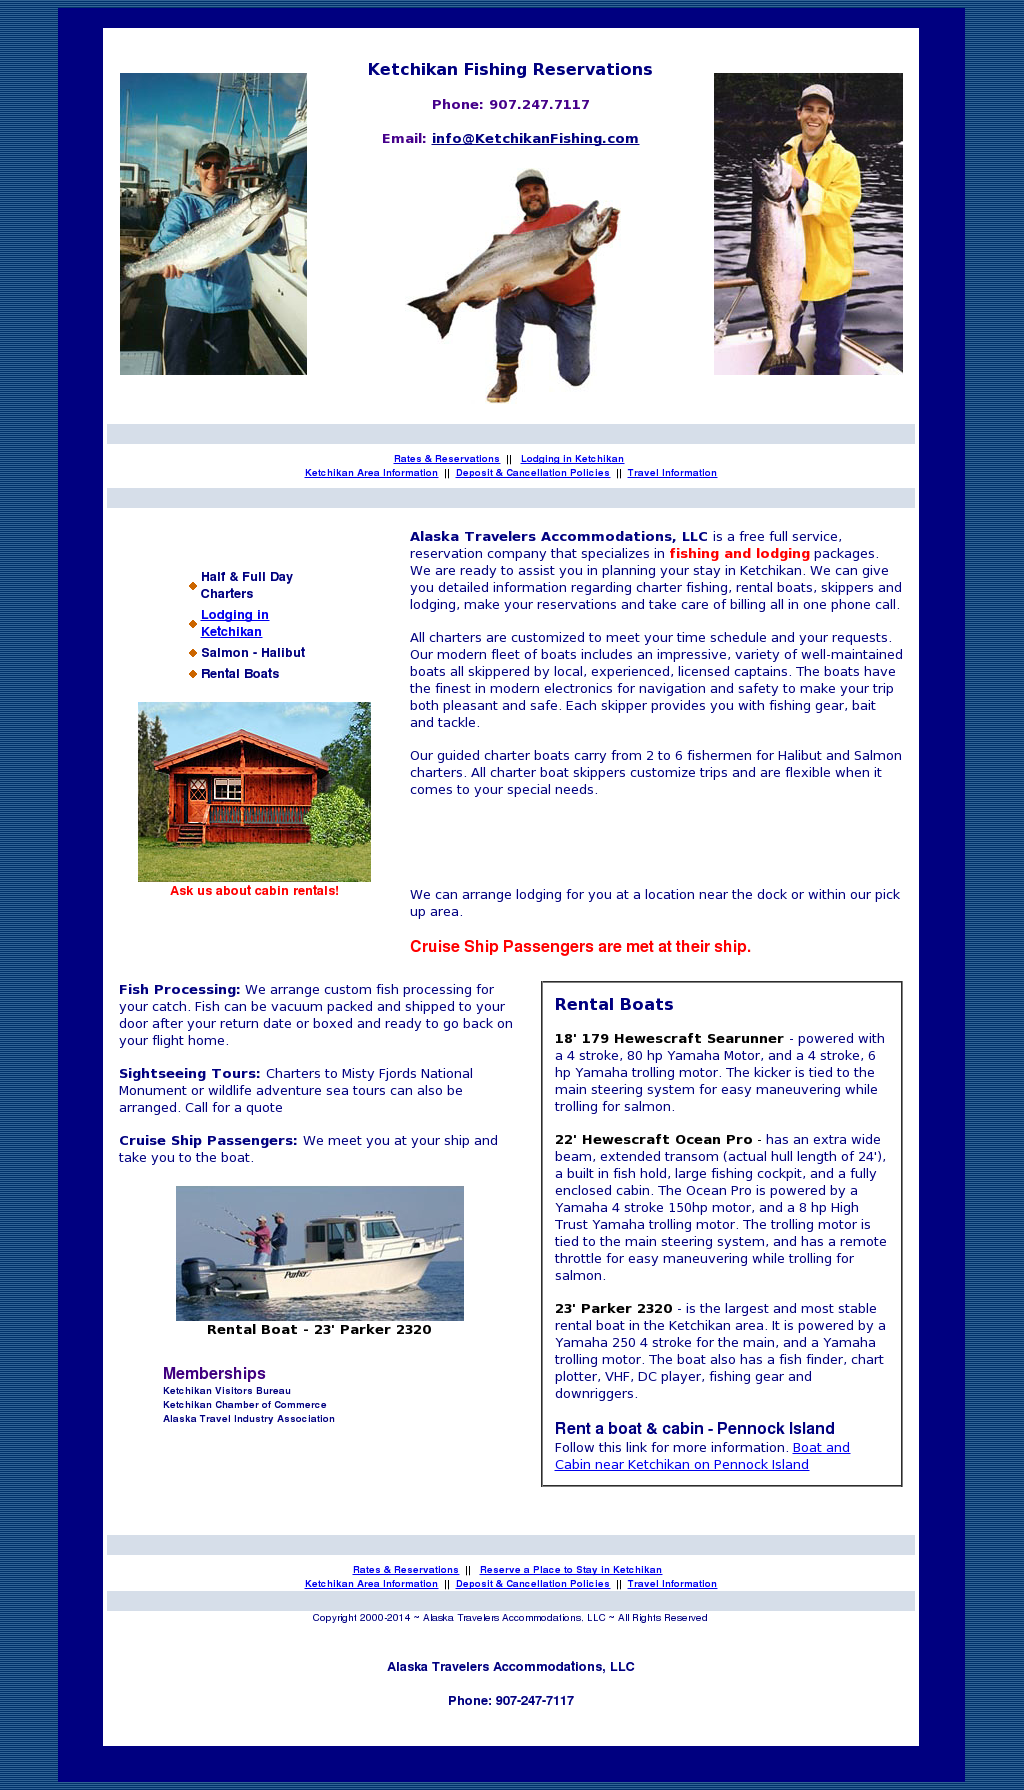 Ketchikan Fishing Reservations Competitors, Revenue and